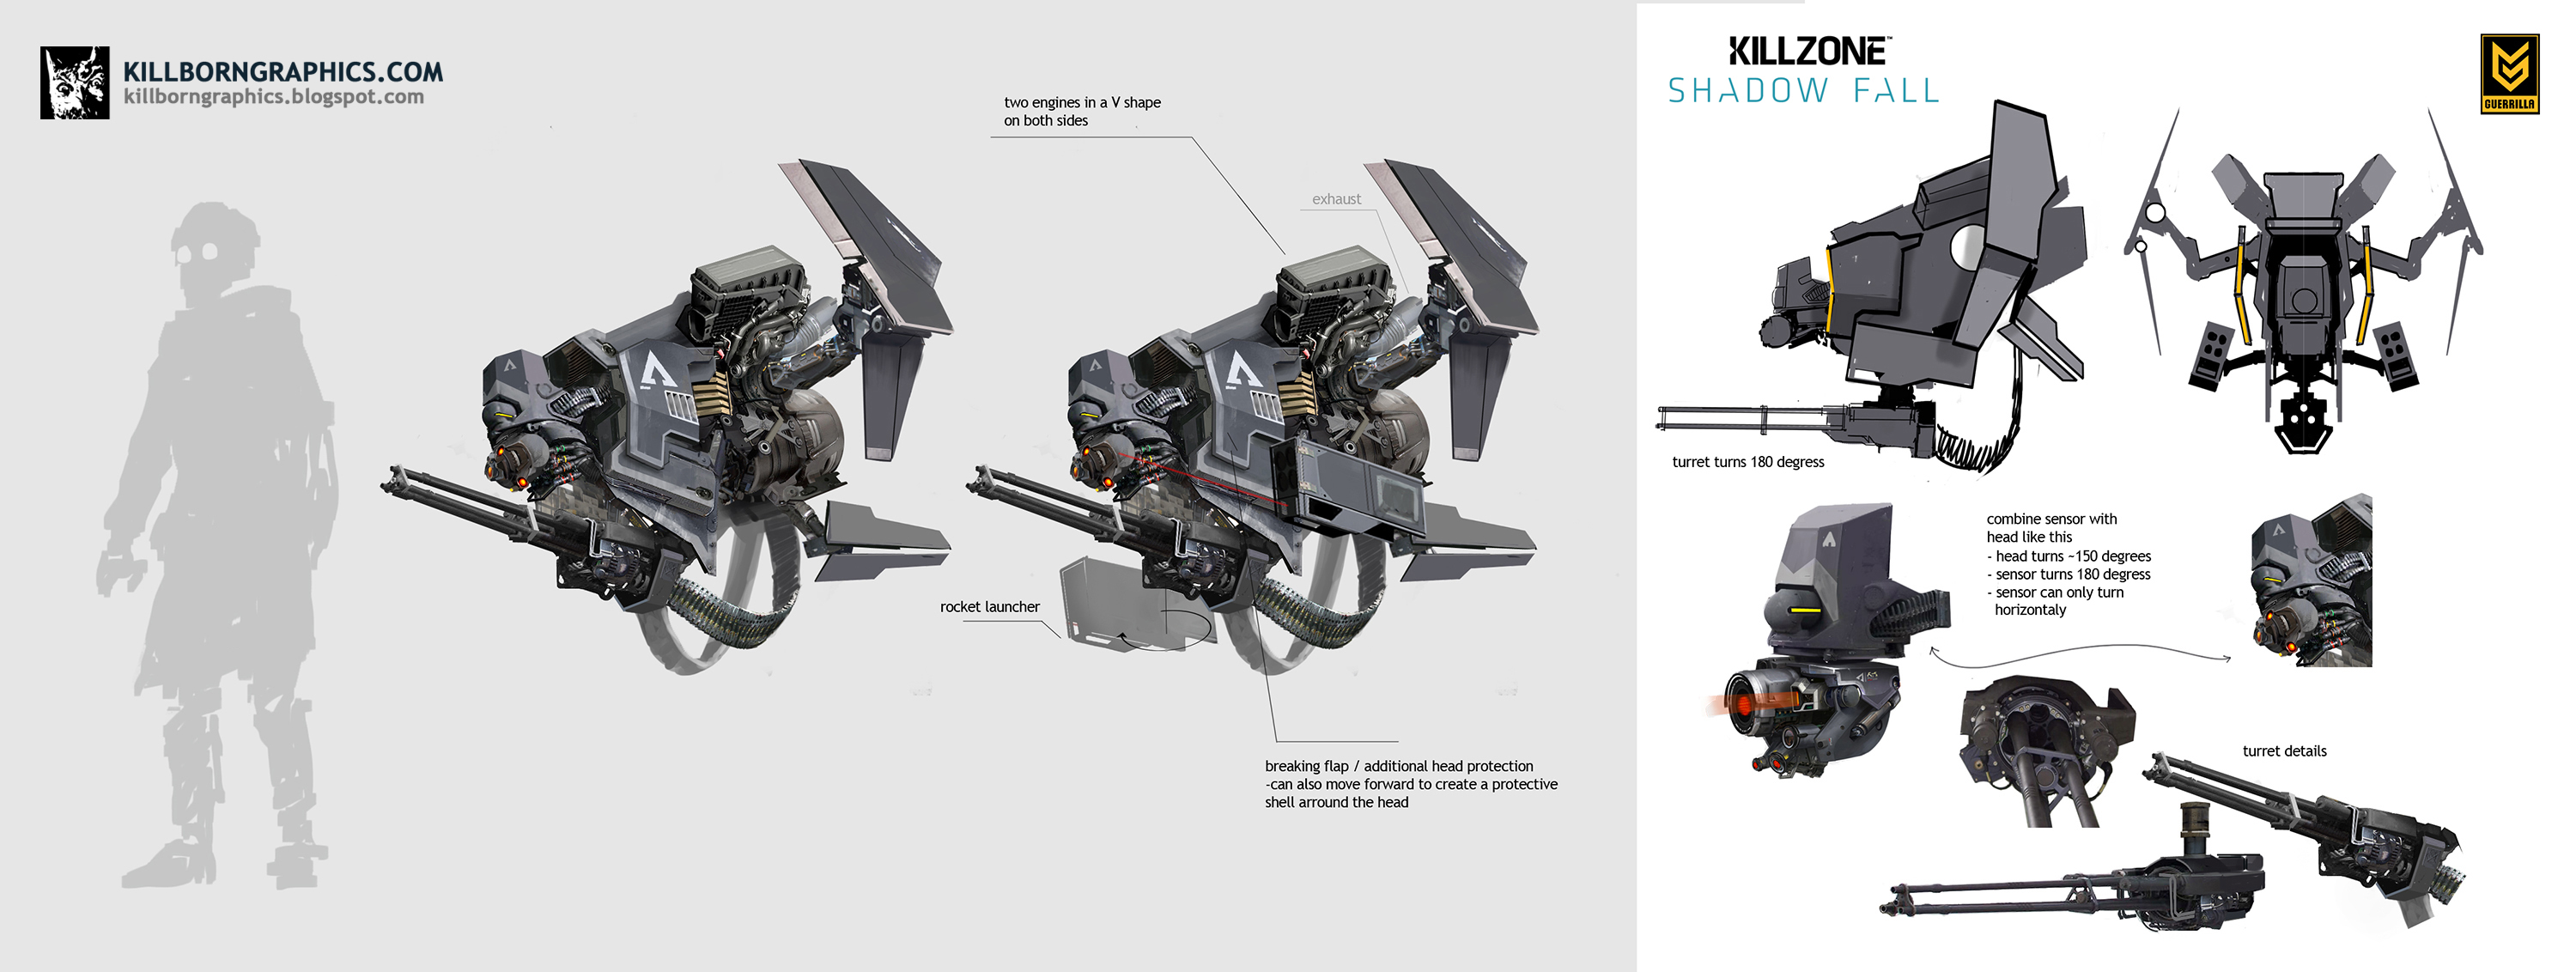 Concept Art Killzone Shadow Fall Of The Game